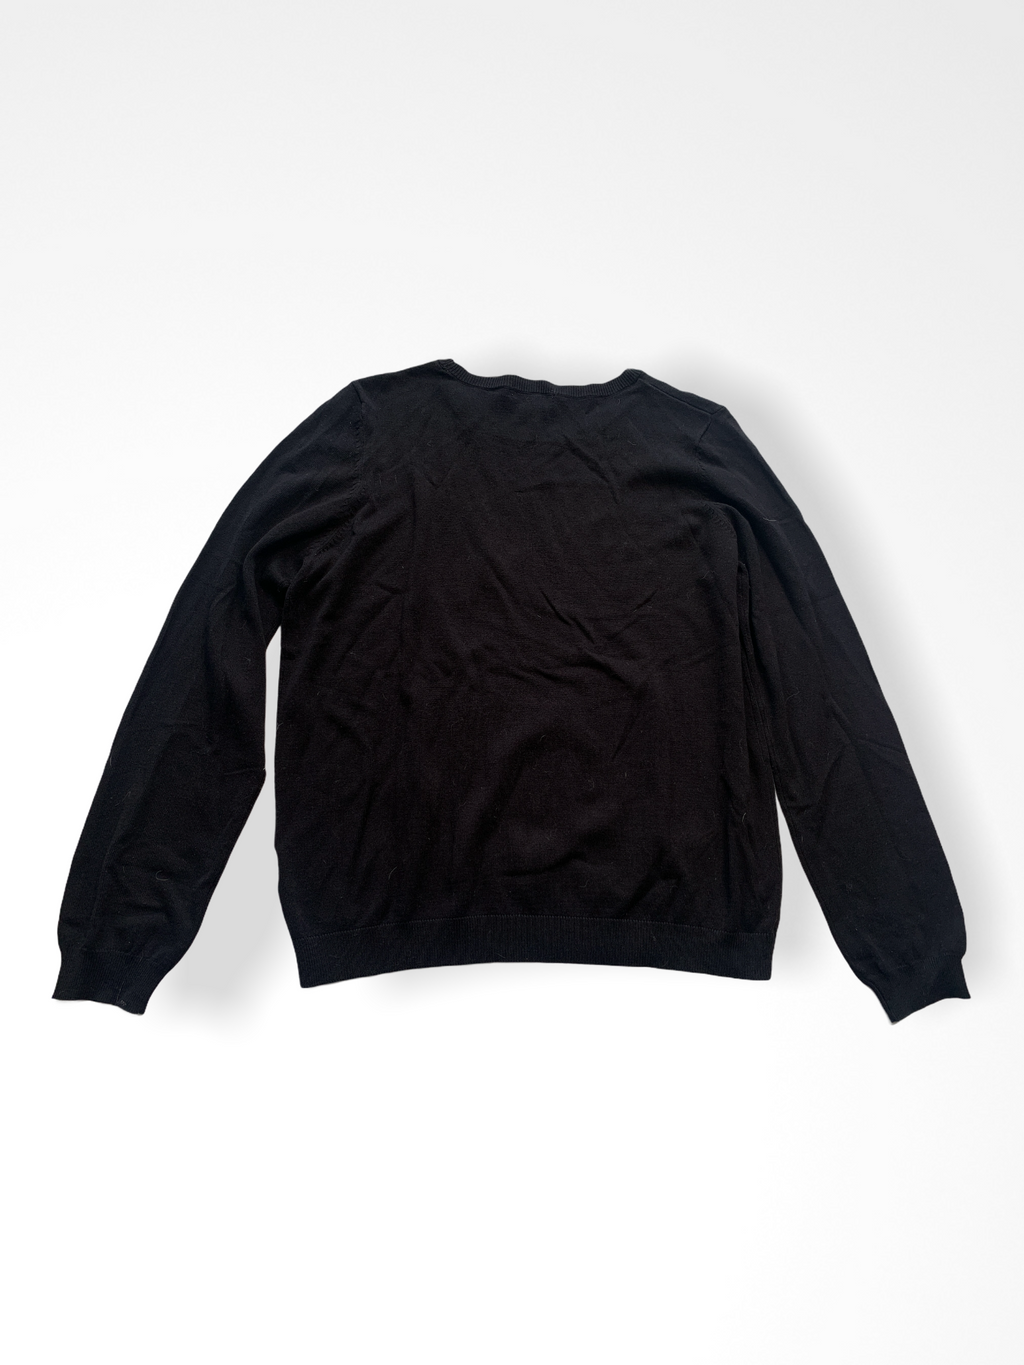 Black H & M Sweater, L